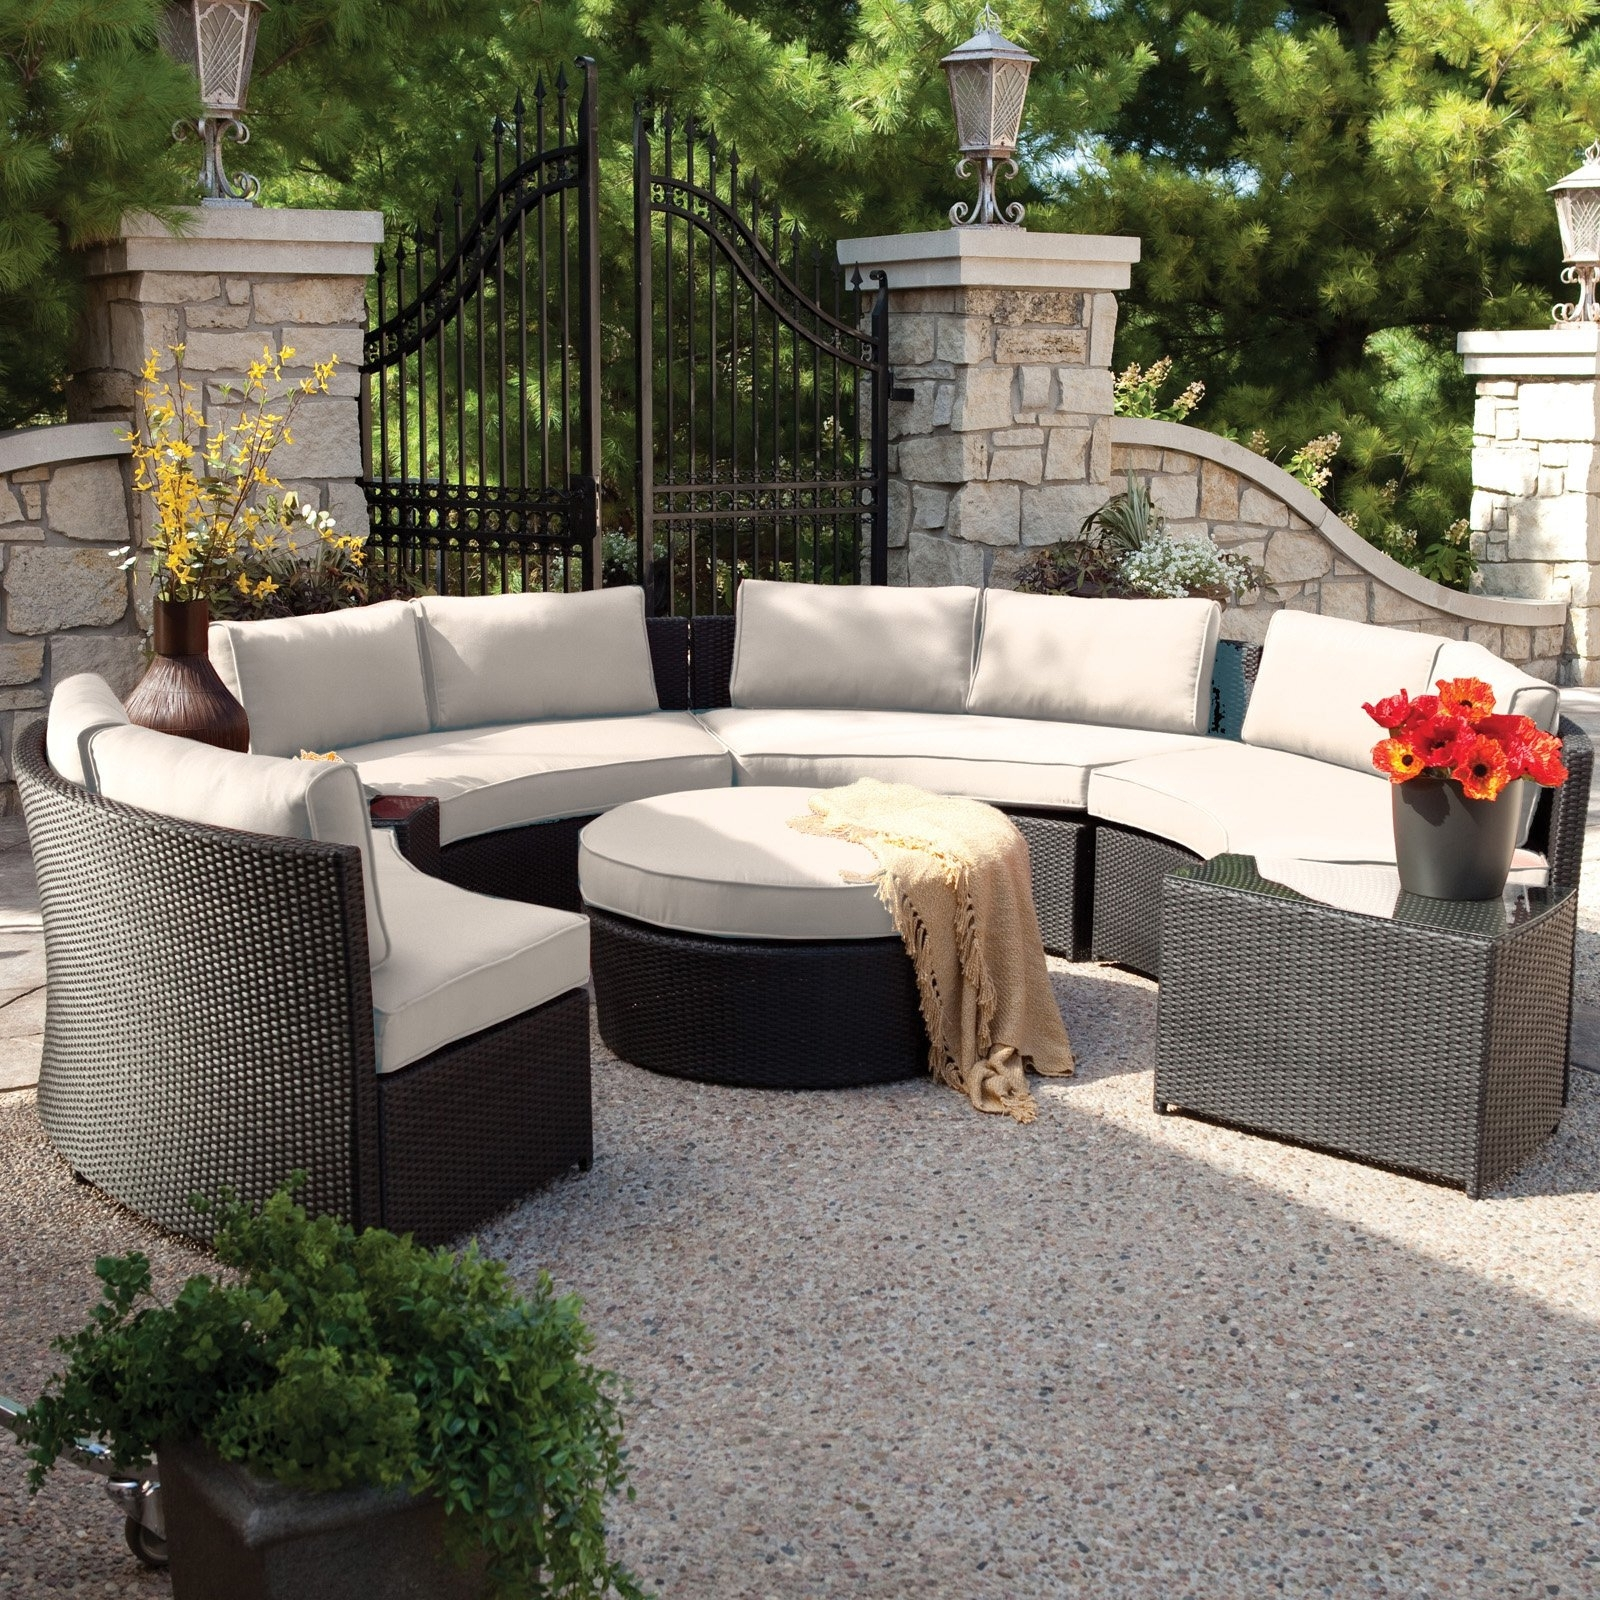 Pier One Outdoor Furniture (View 9 of 15)